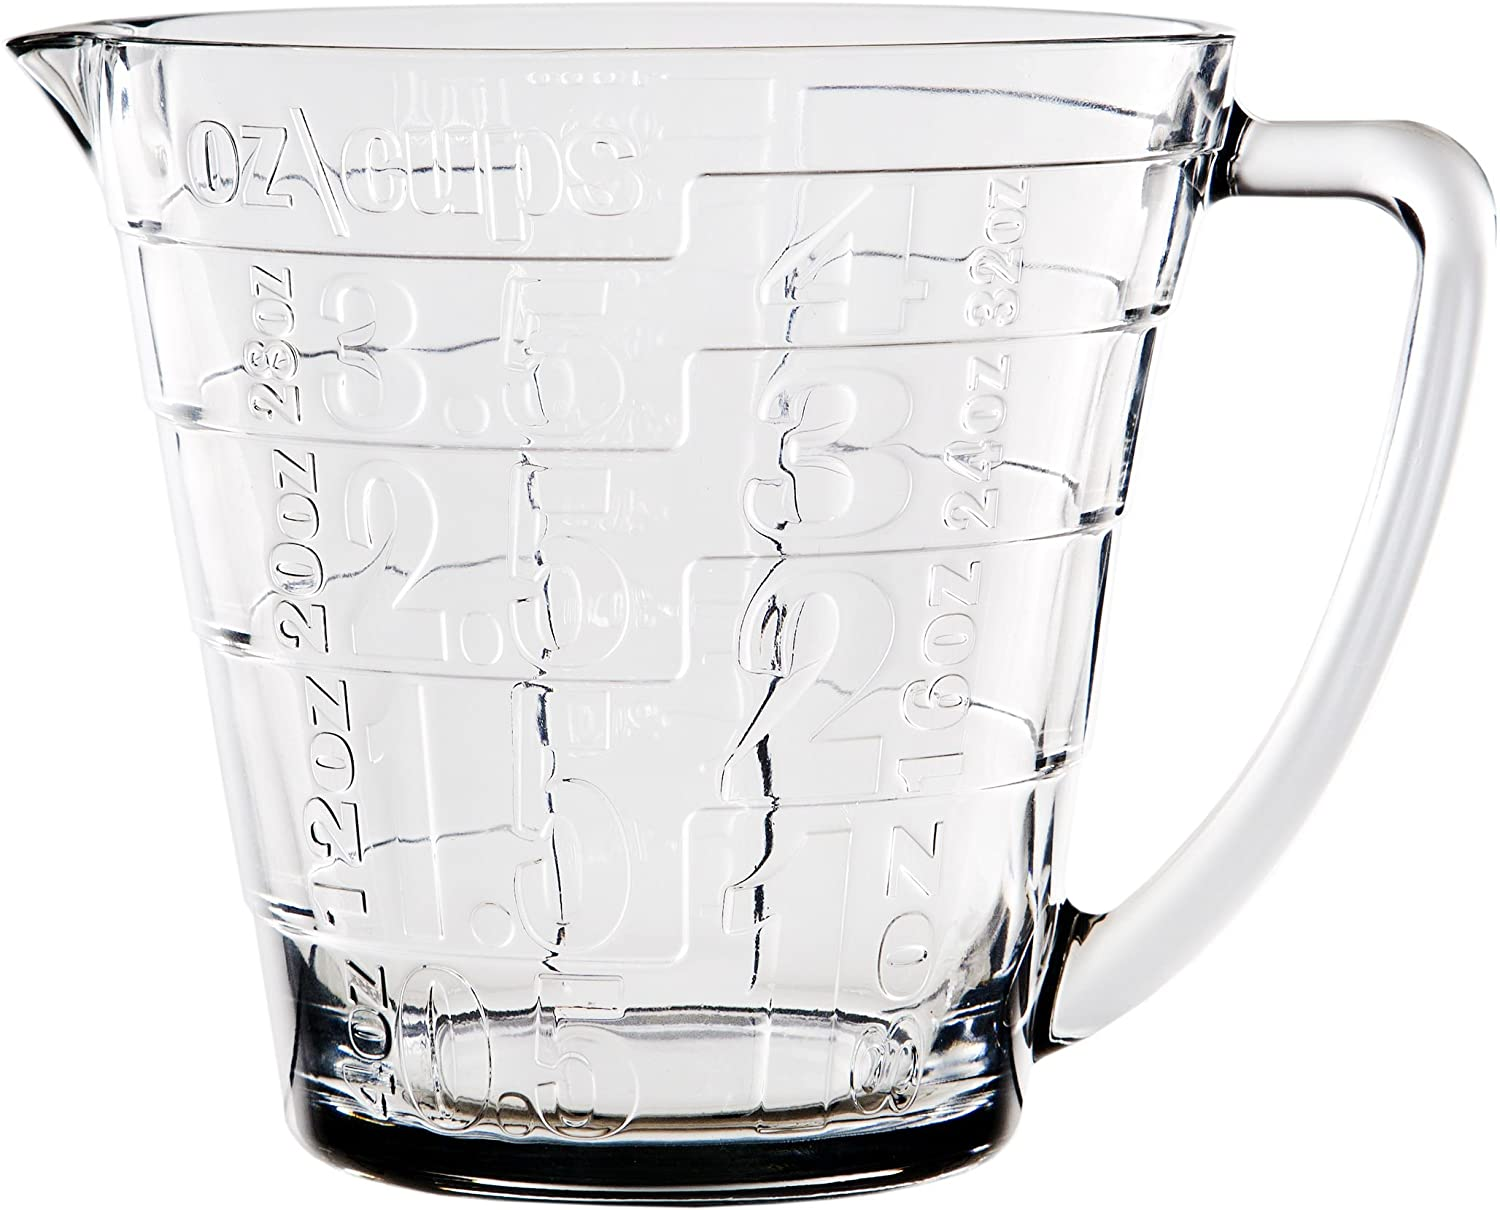 Palais Glassware Glass Liquid Measuring Cup - Up to 4 Cups (Clear)